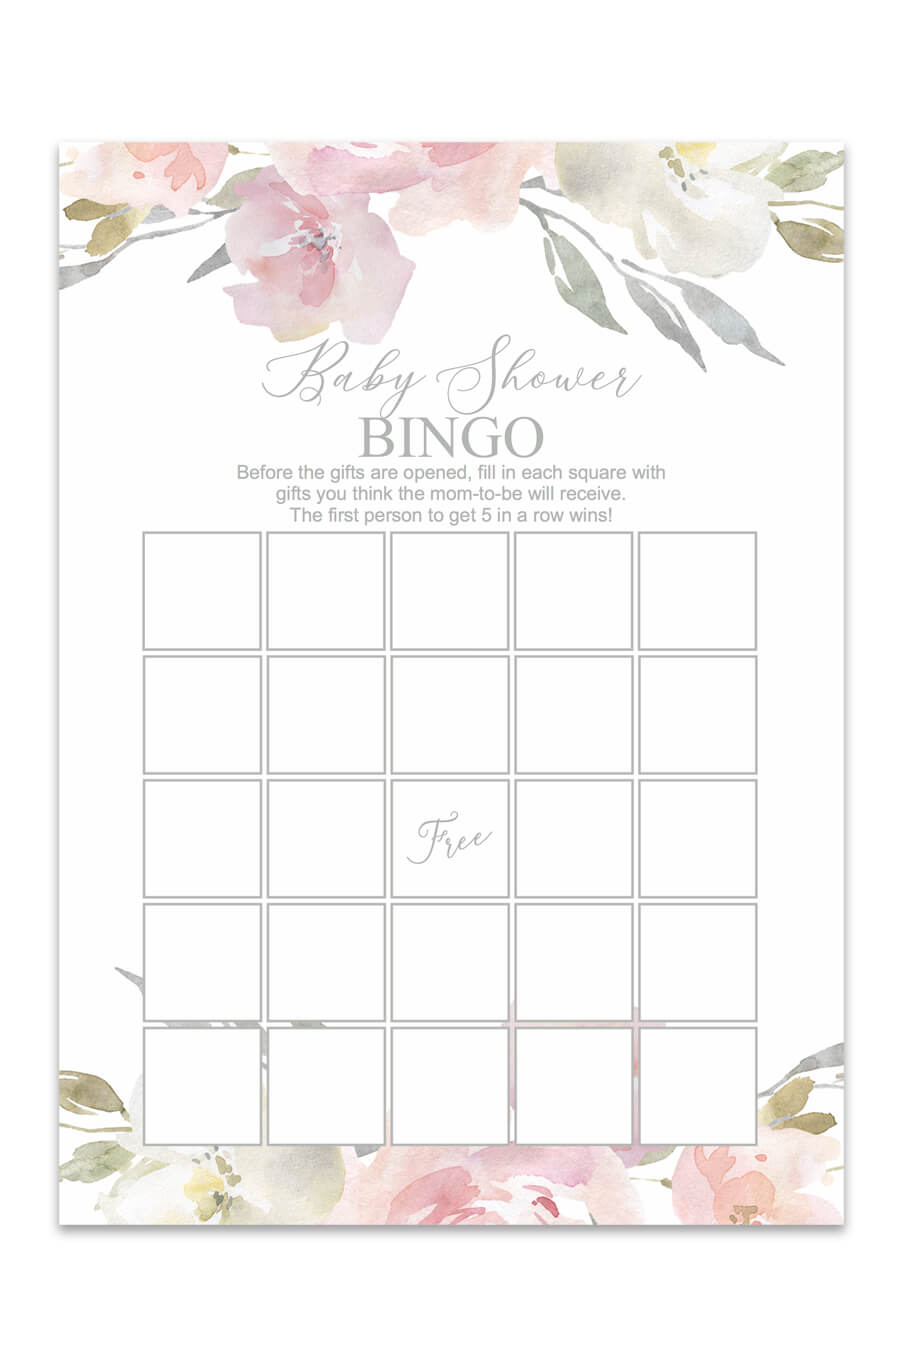 graphic about Free Printable Baby Shower Bingo called Blush Floral Printable Little one Shower Bingo - Chicfetti